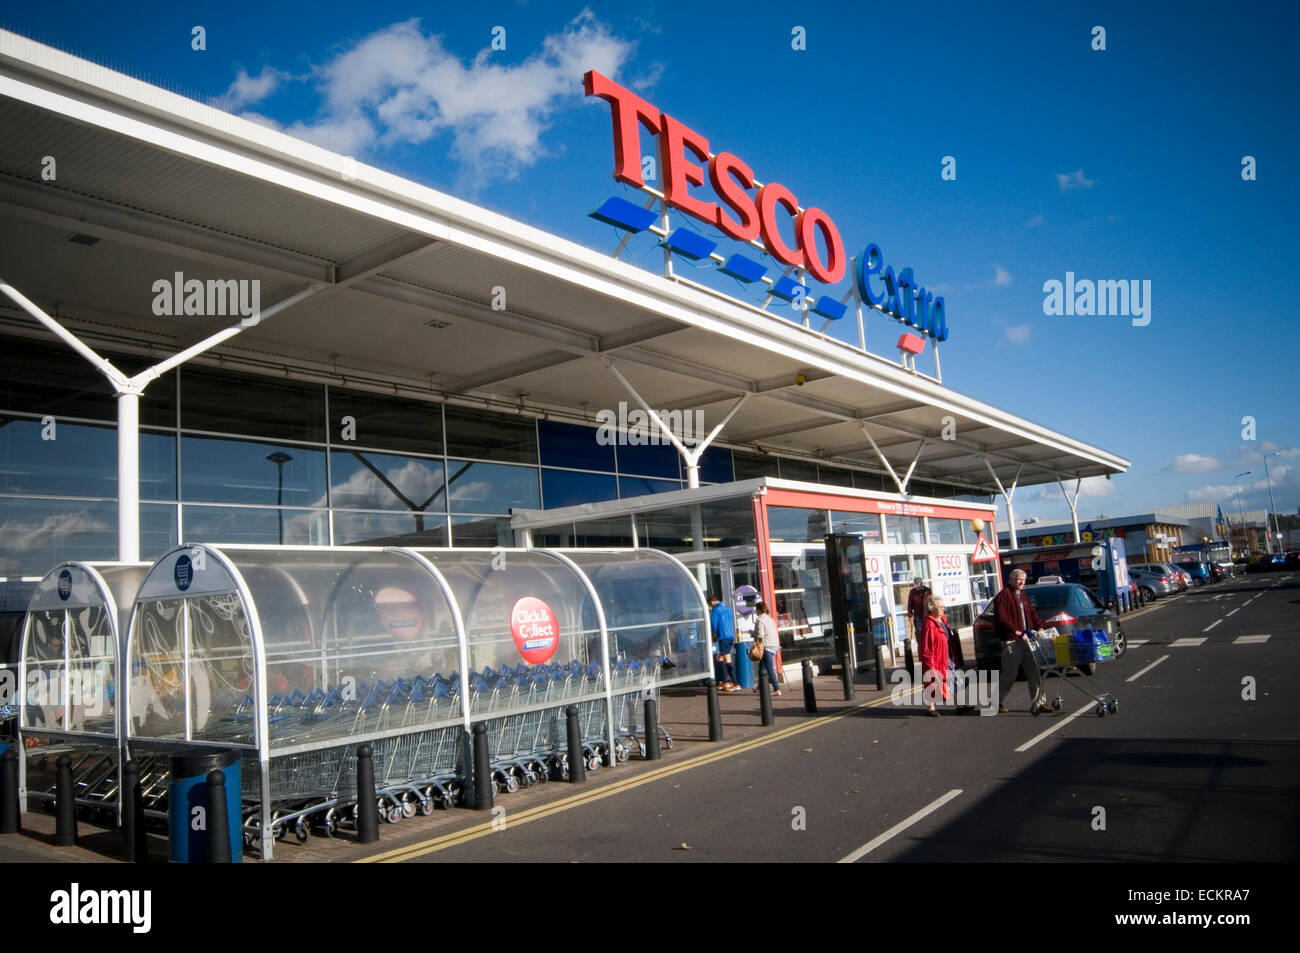 tesco extra superstore super store stores out of town shop shops shopping center centre  tescos  huge large big - Stock Image